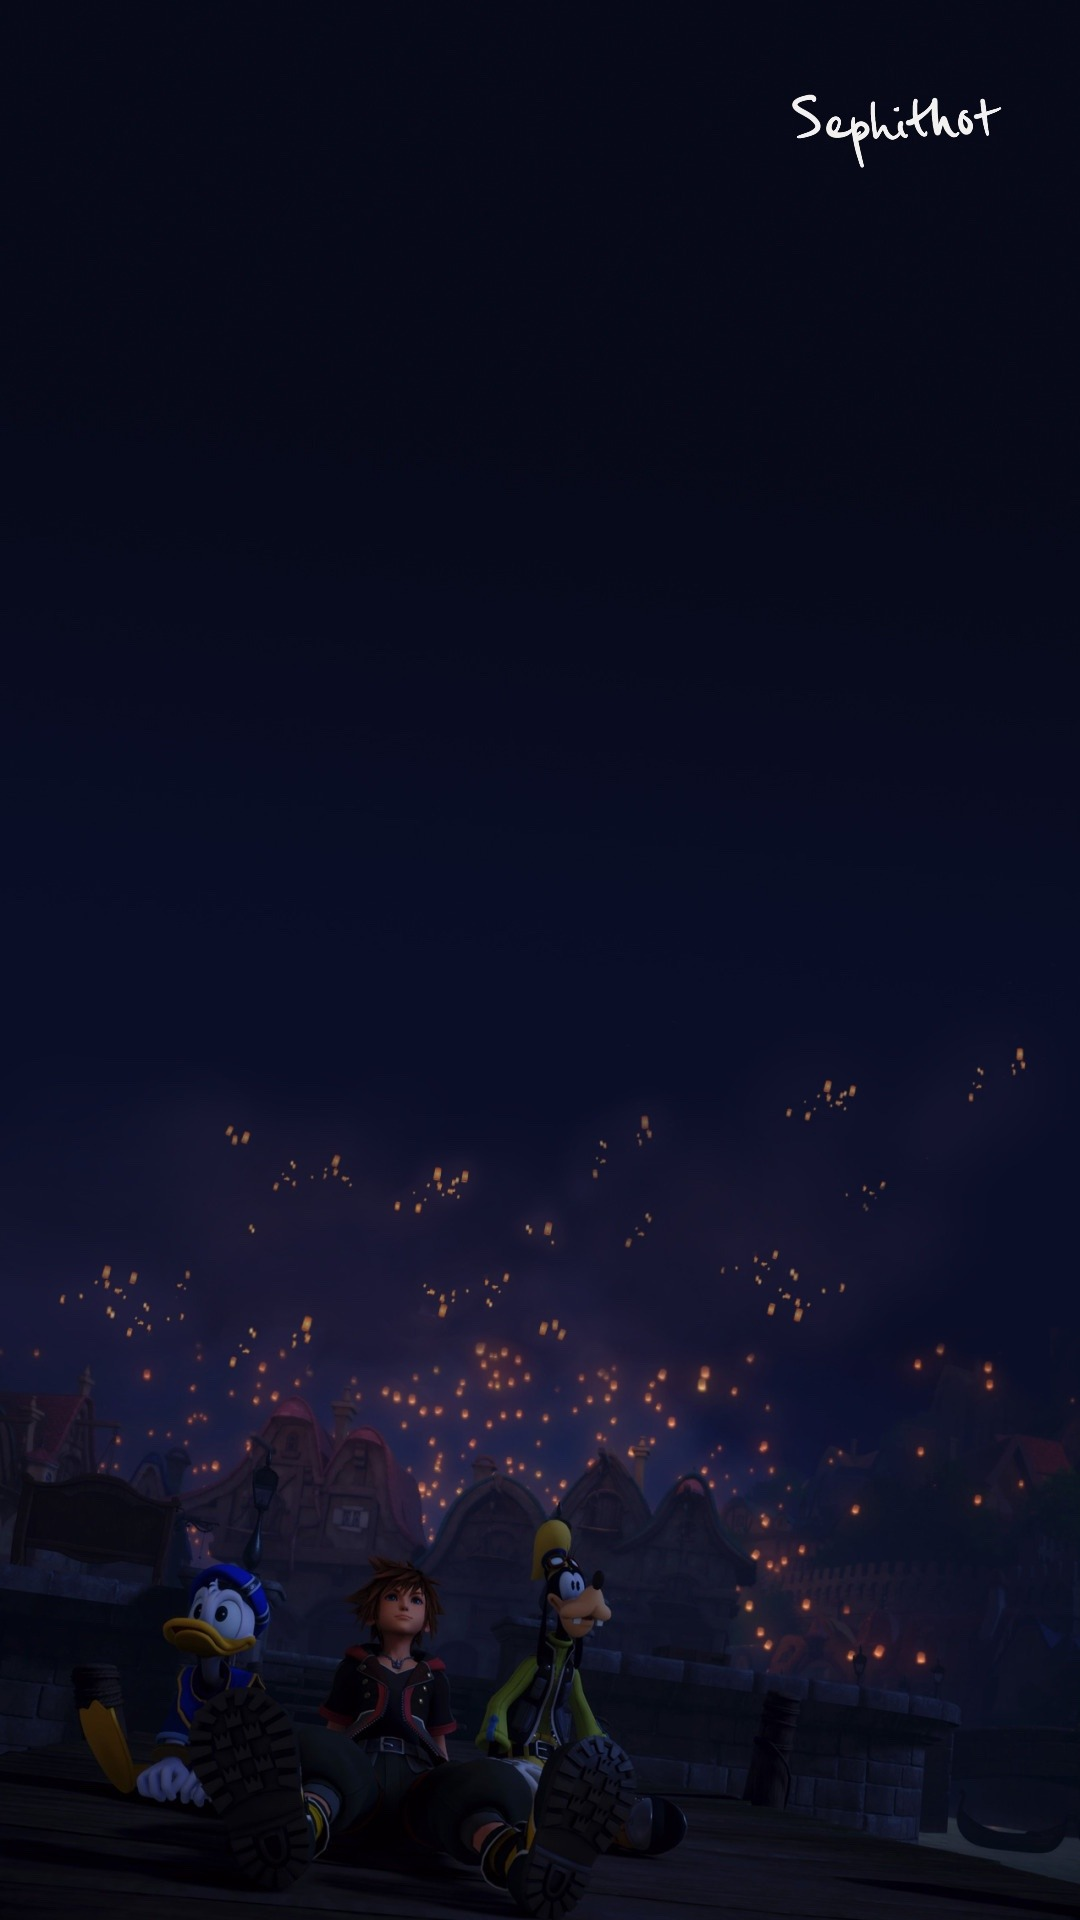 Made A Phone Wallpaper From The Scene In Kingdom Hearts Kingdom